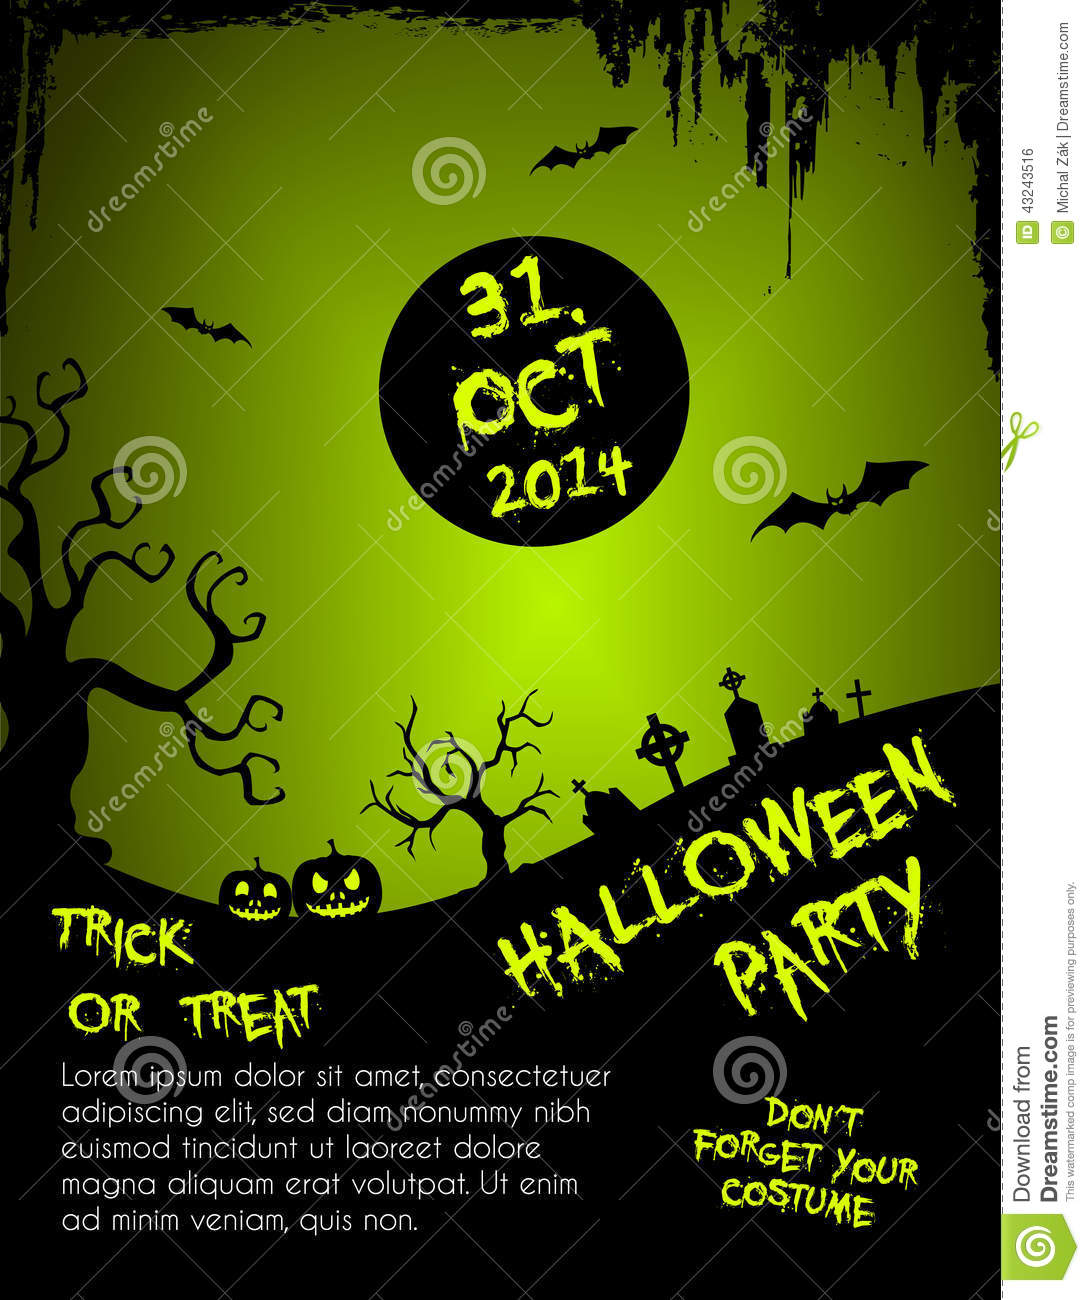 Halloween Party Flyer Template - Green And Black Stock Vector ...